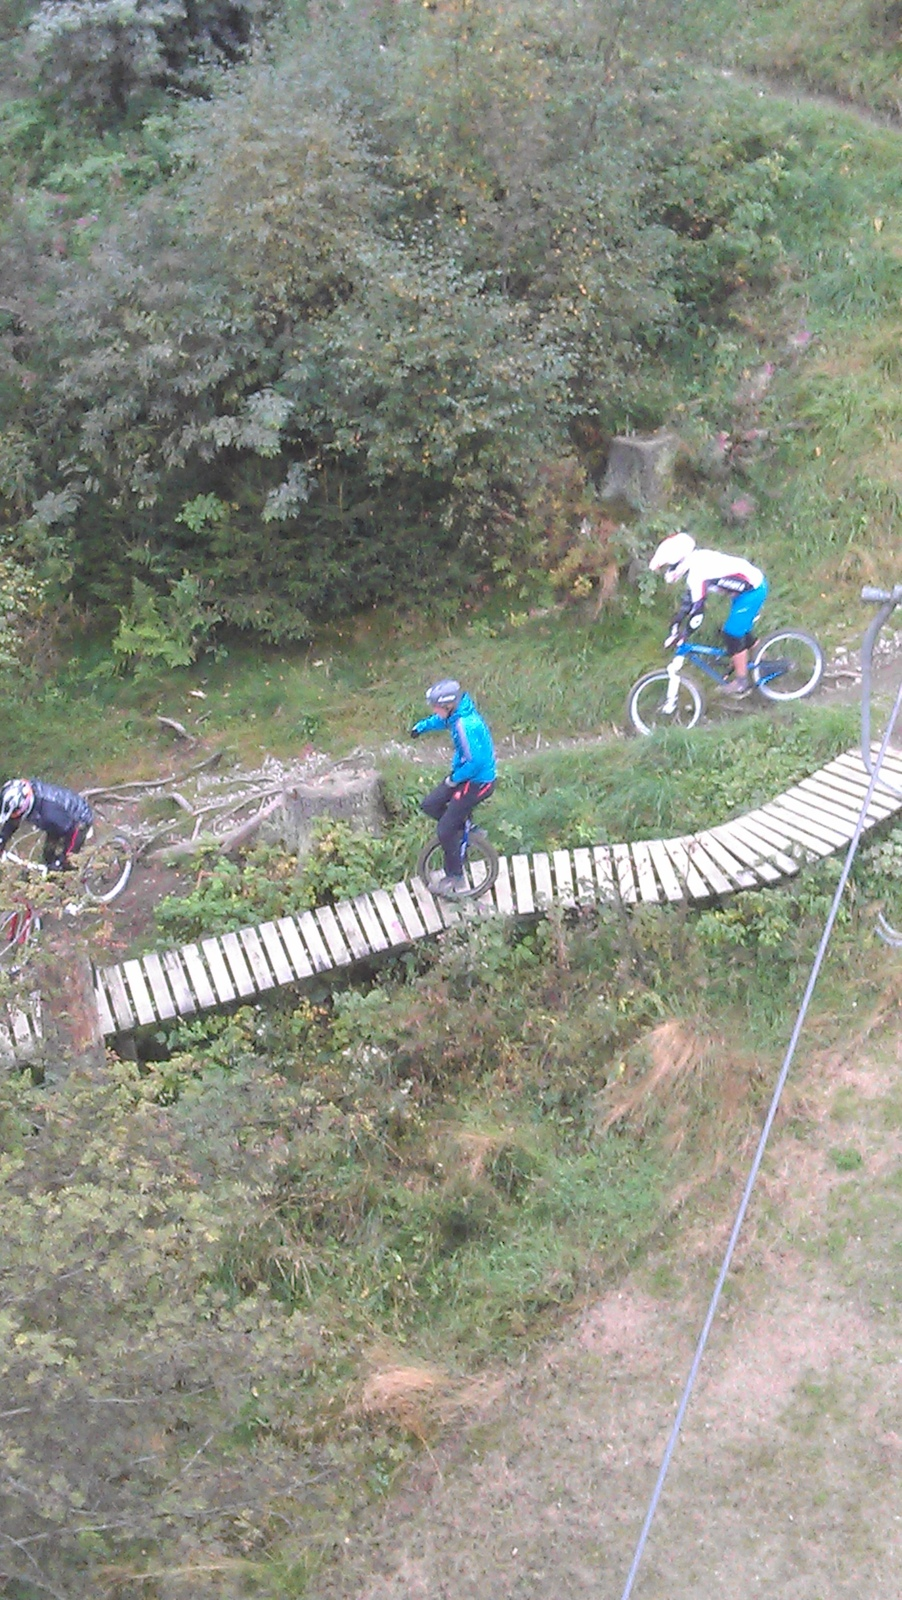 Unicyclist hitting the trails at winterberg. If anyone knows his name I will gladly add it in the detail